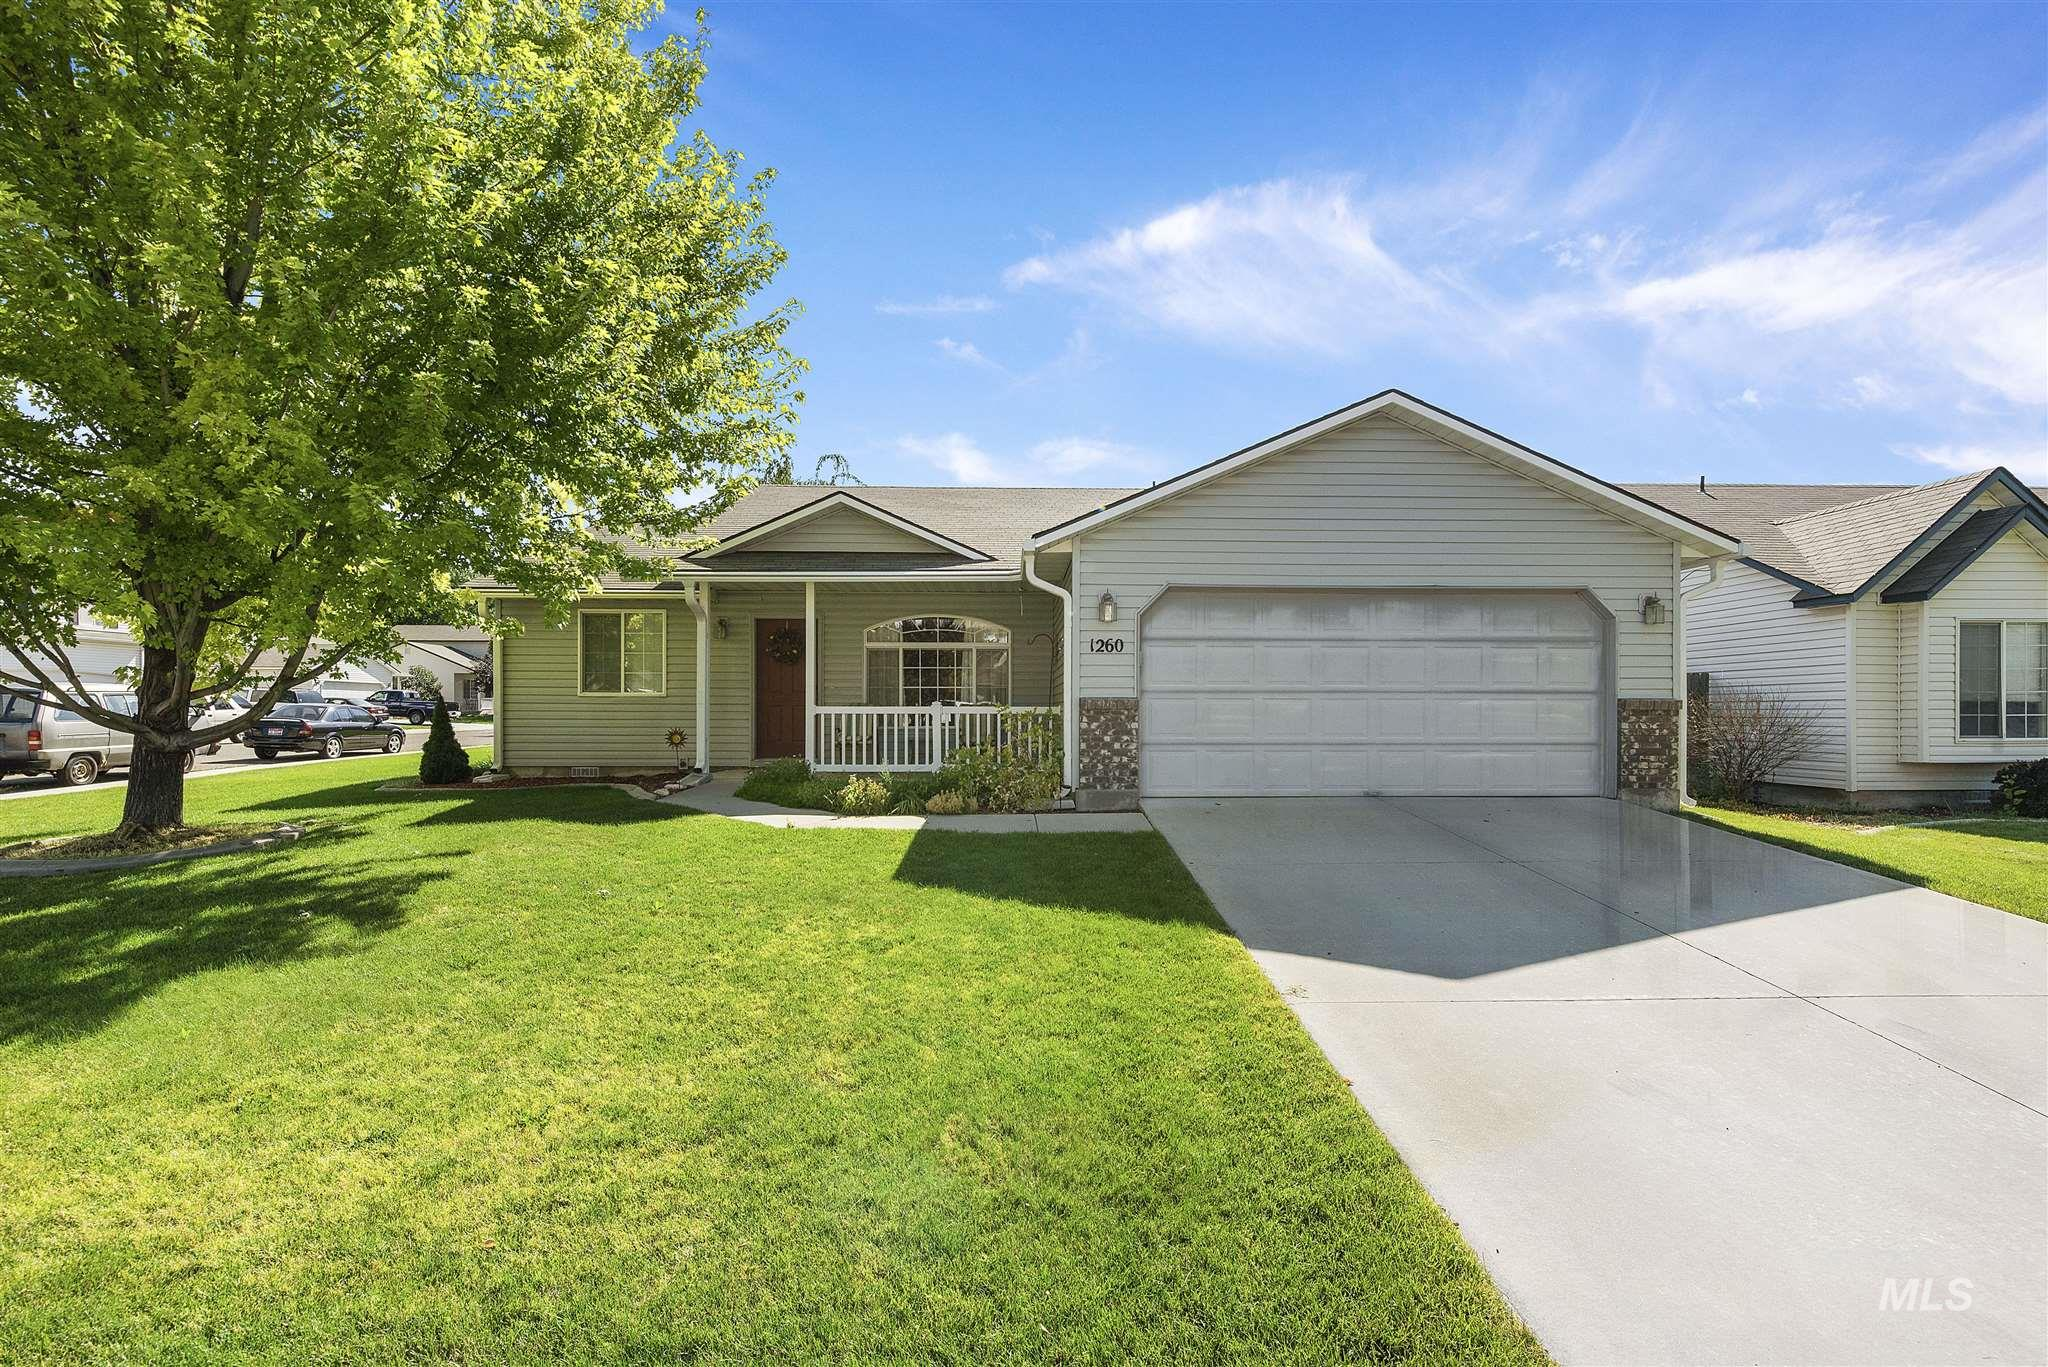 Photo for 1260 N Forty Niner Ave., Kuna, ID 83634 (MLS # 98775810)